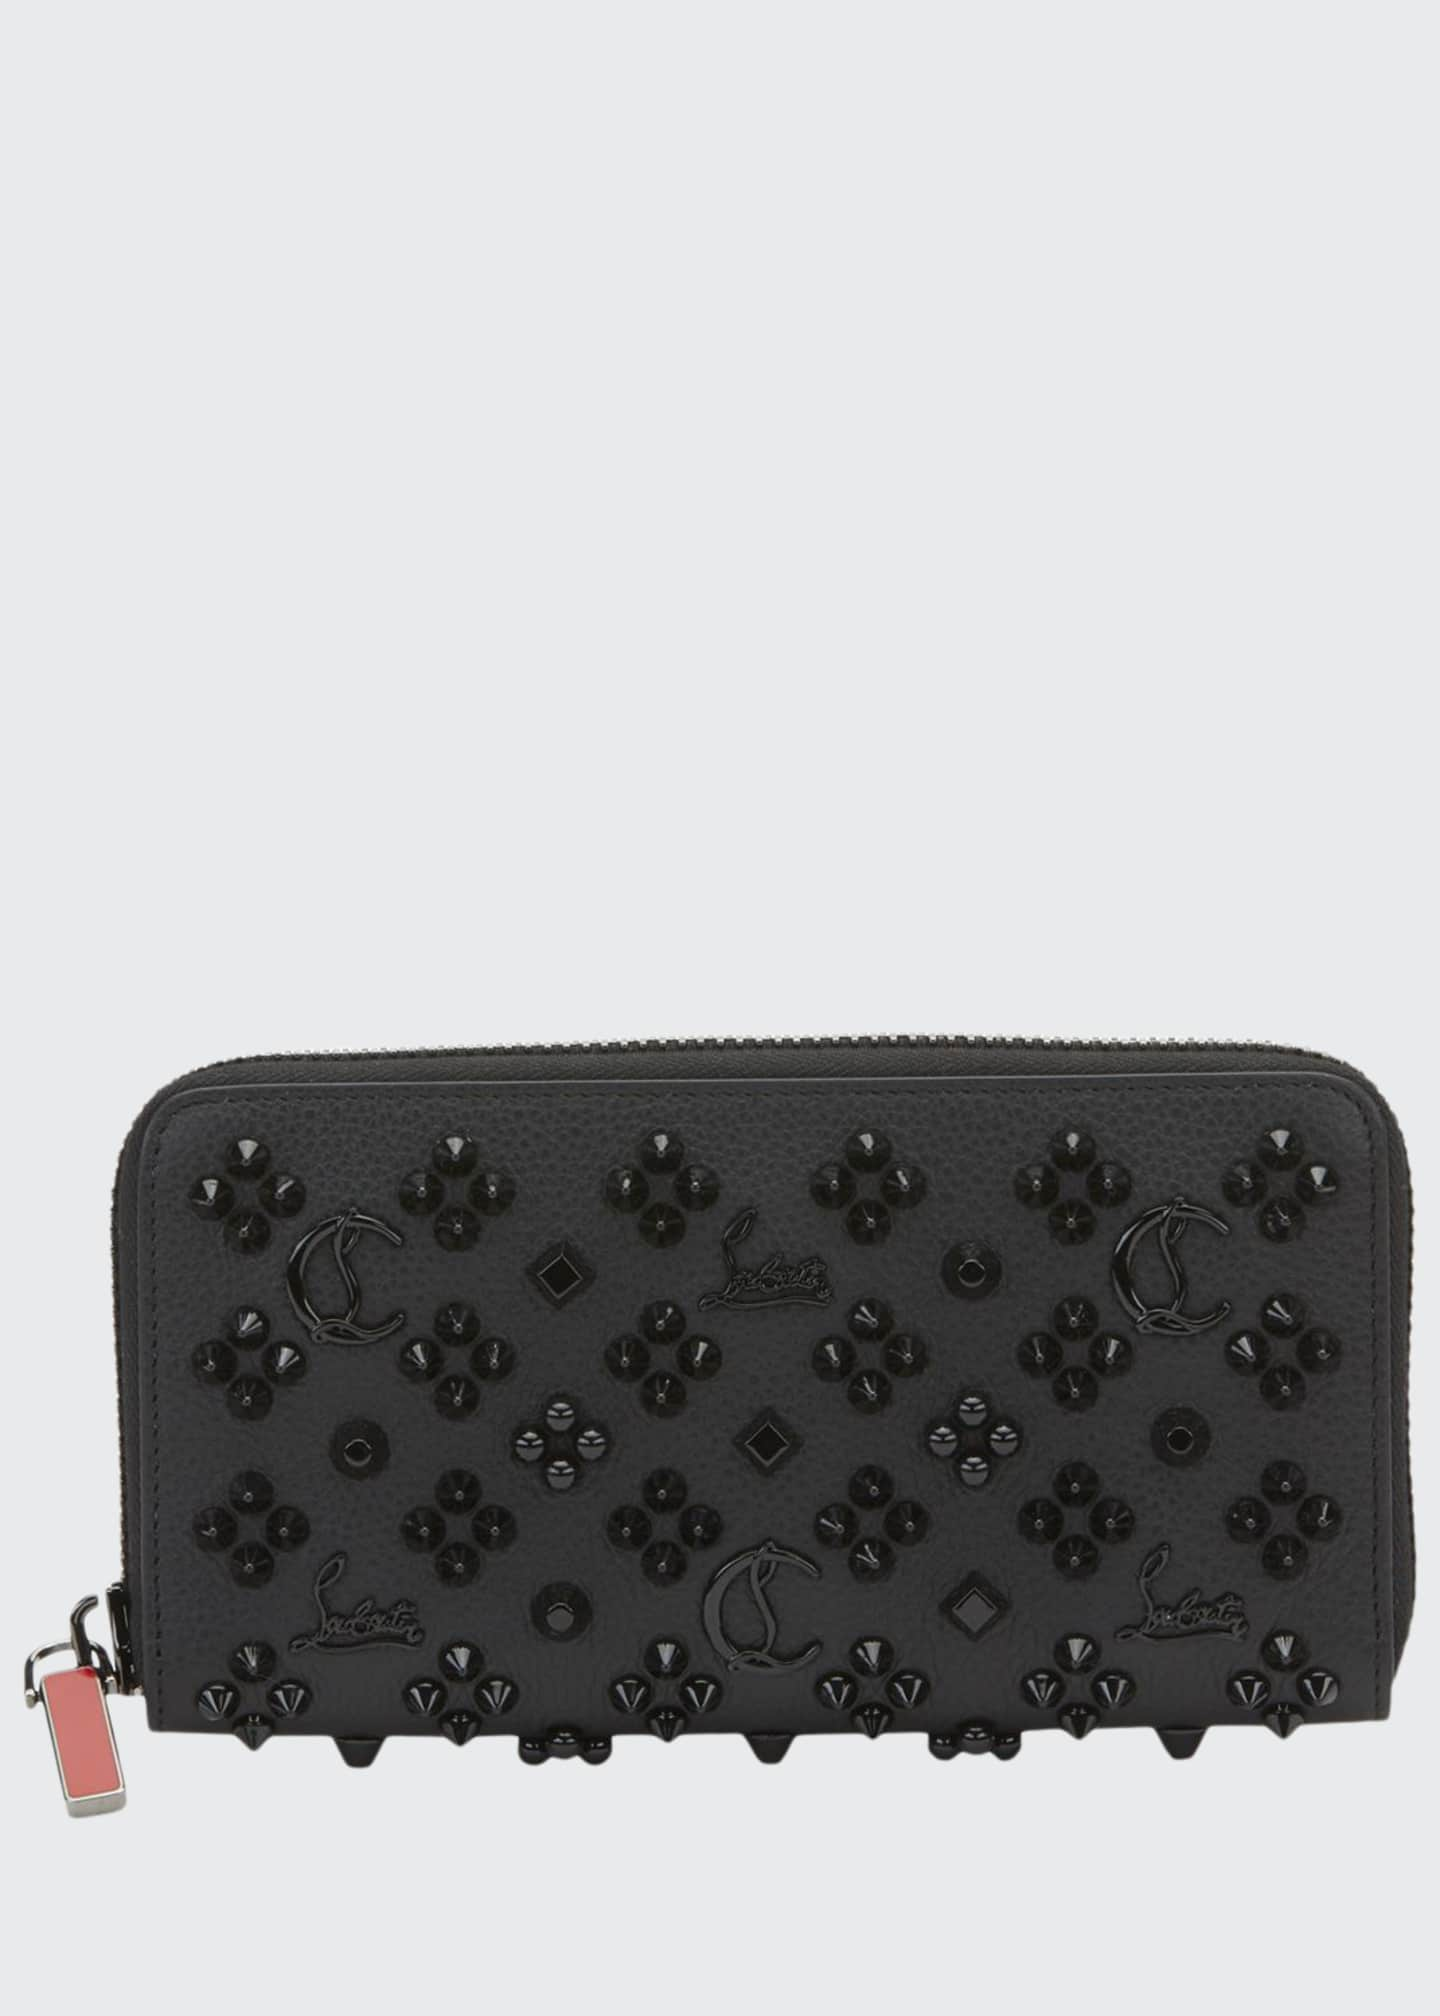 Christian Louboutin Men's Panettone Embellished Leather Wallet